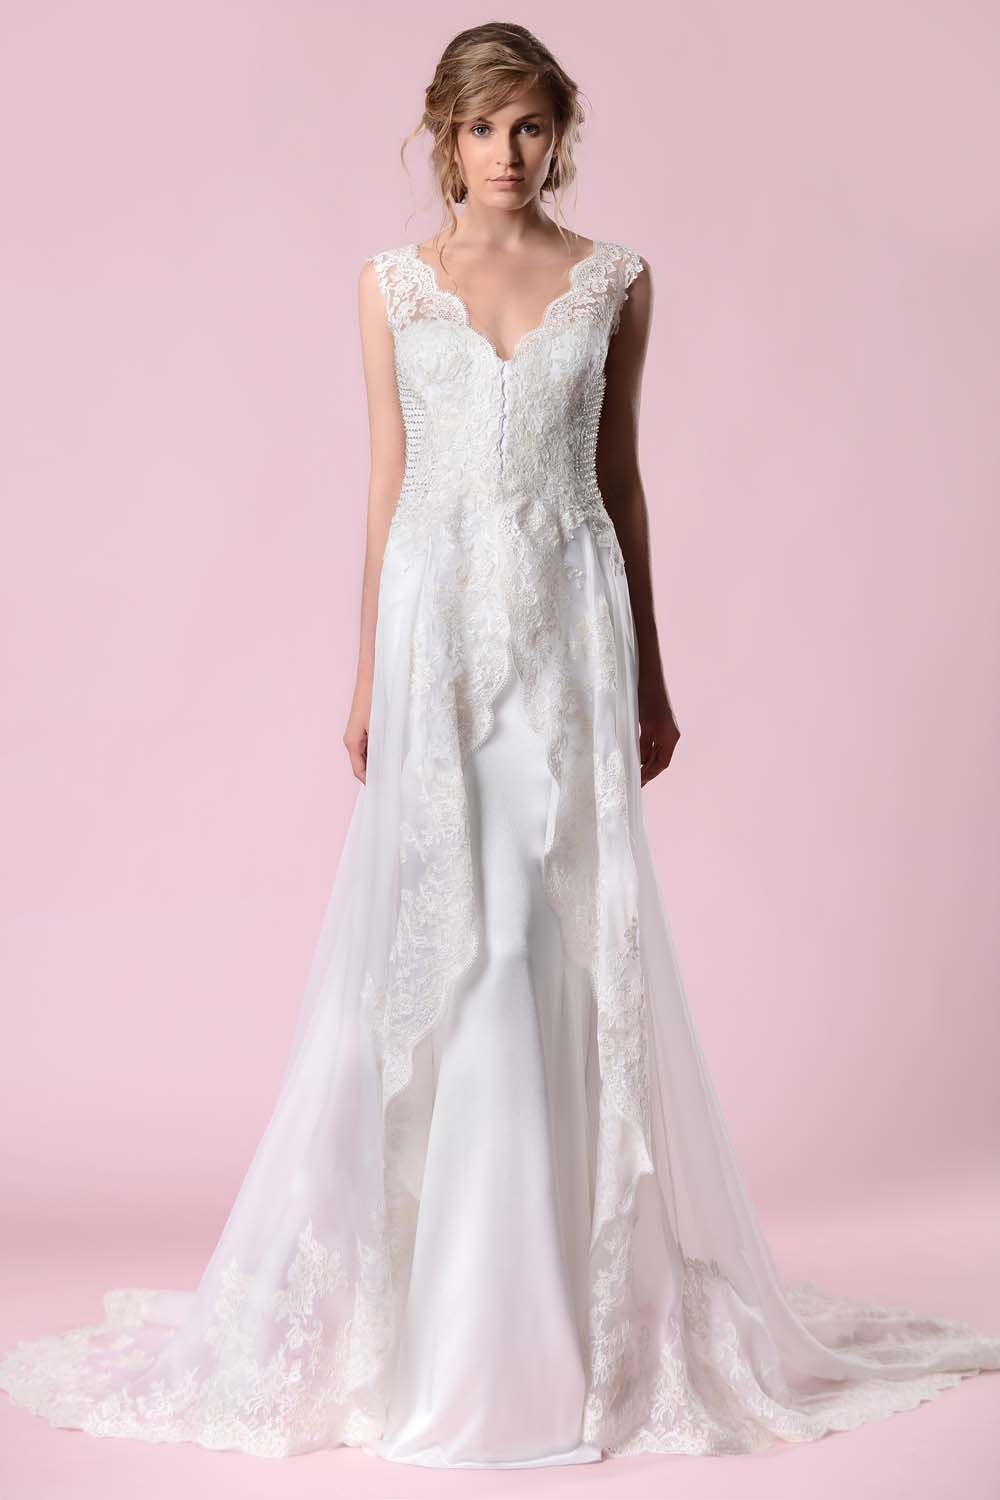 bcafc68c161 NEW ARRIVAL FROM GEMY MAALOUF! Visit Panache Bridal of New York to see it in  real life.  weddingdresses  newyorkweddings